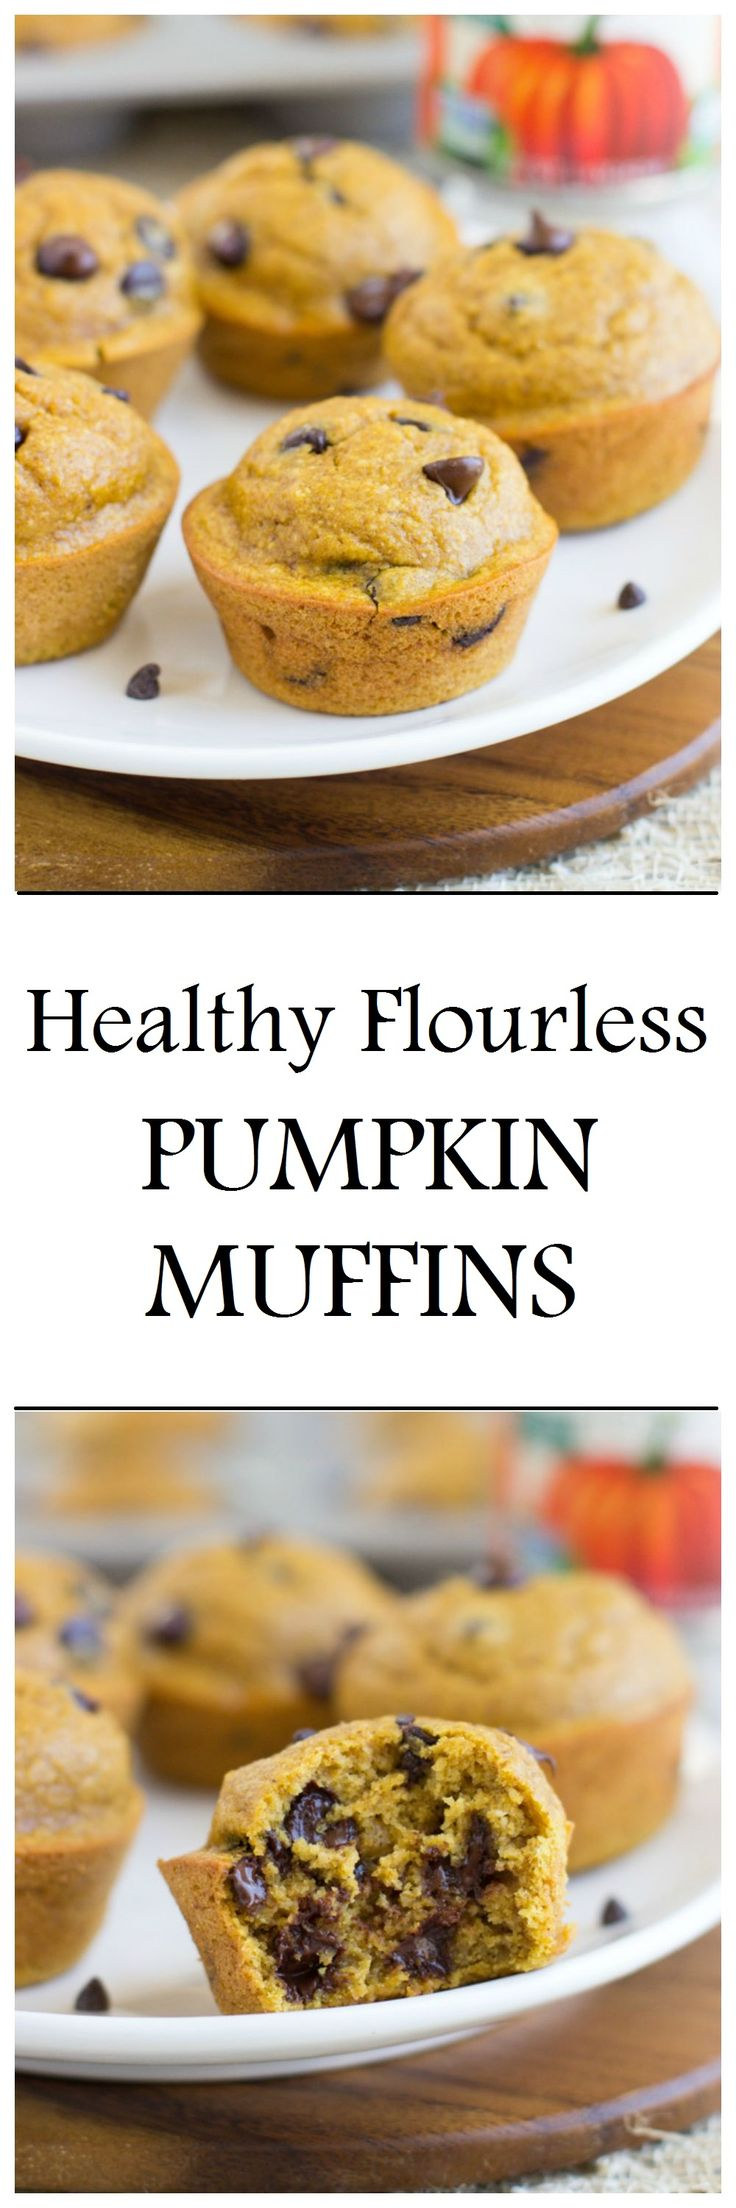 These Healthy Flourless Pumpkin Muffins are moist, delicious, and super easy to make. They're gluten-free, oil-free, dairy-free, and refined sugar-free. Hi! Happy Labor Day! I hope most of you are out and about, enjoying the last long weekend of the summer. Butwhen you get back to your kitchens, it's time for MUFFINS. I waited as …